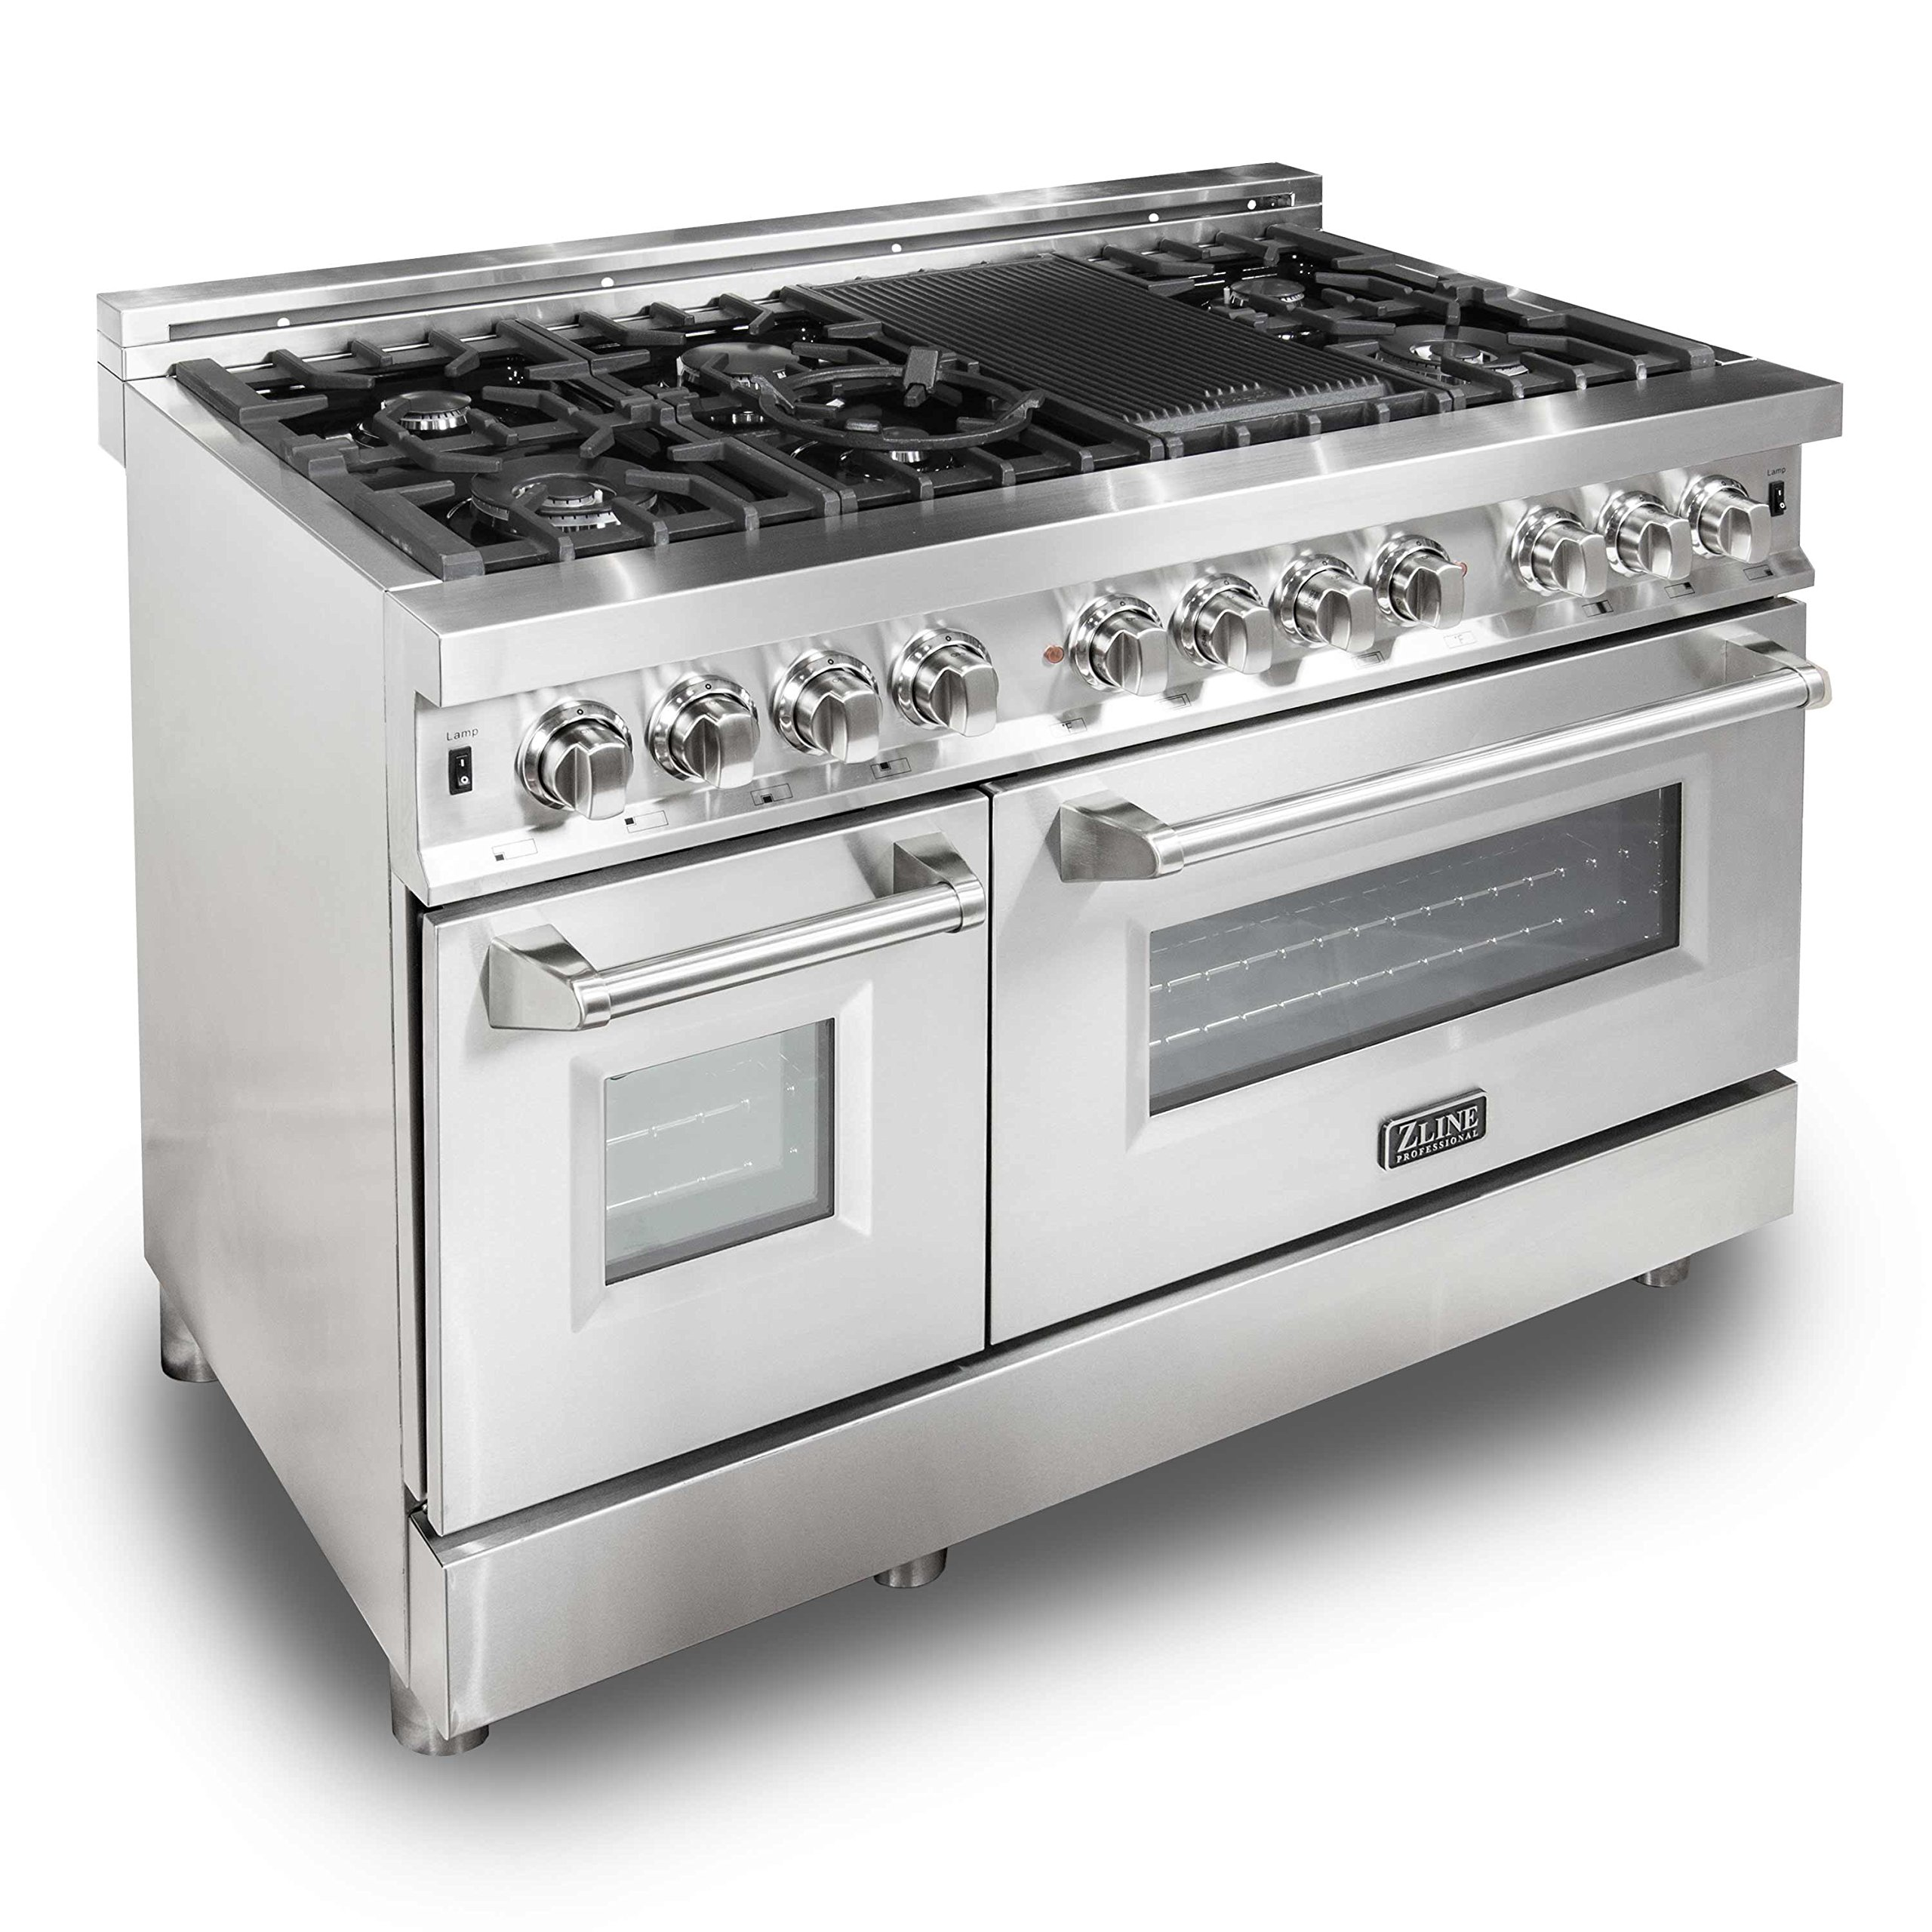 ZLINE 48 in. 6.0 cu. ft.7 Gas Burner/Electric Oven Range in Stainless Steel (RA48) by Z Line Kitchen and Bath